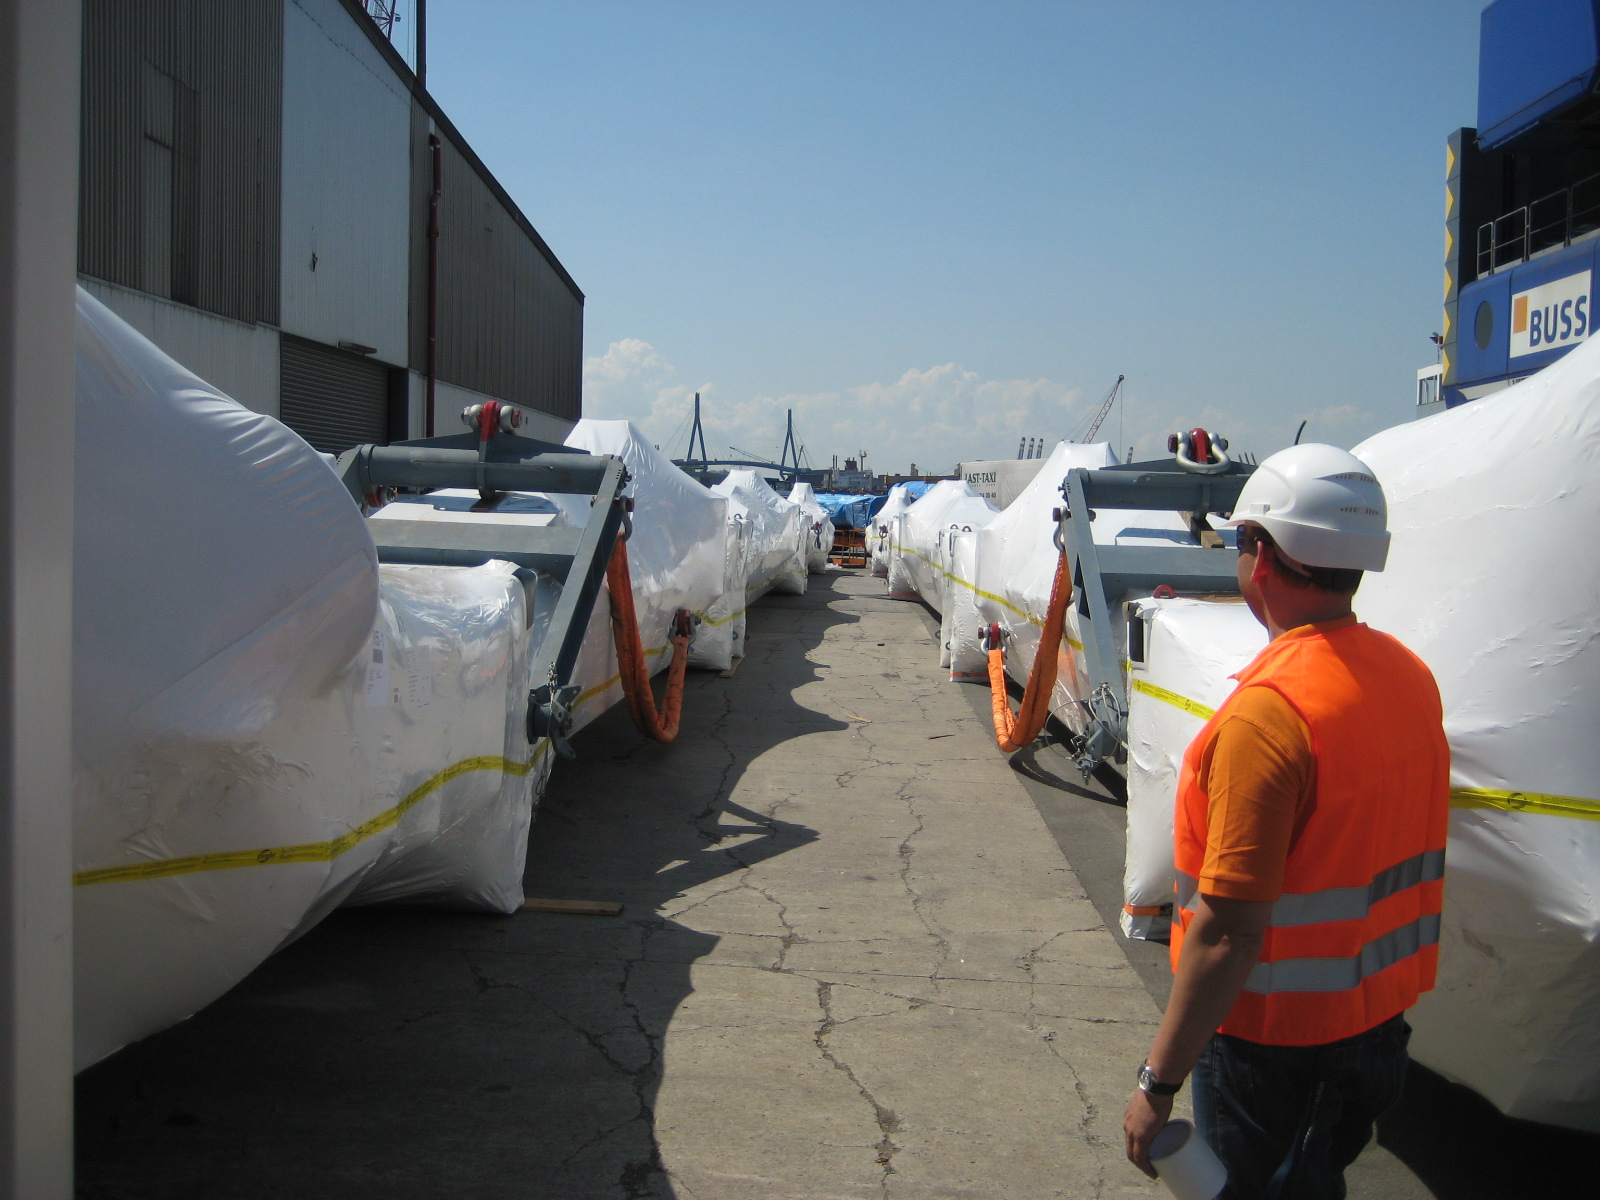 Intercept Technology Shrink Wrap is the ultimate in corrosion protection